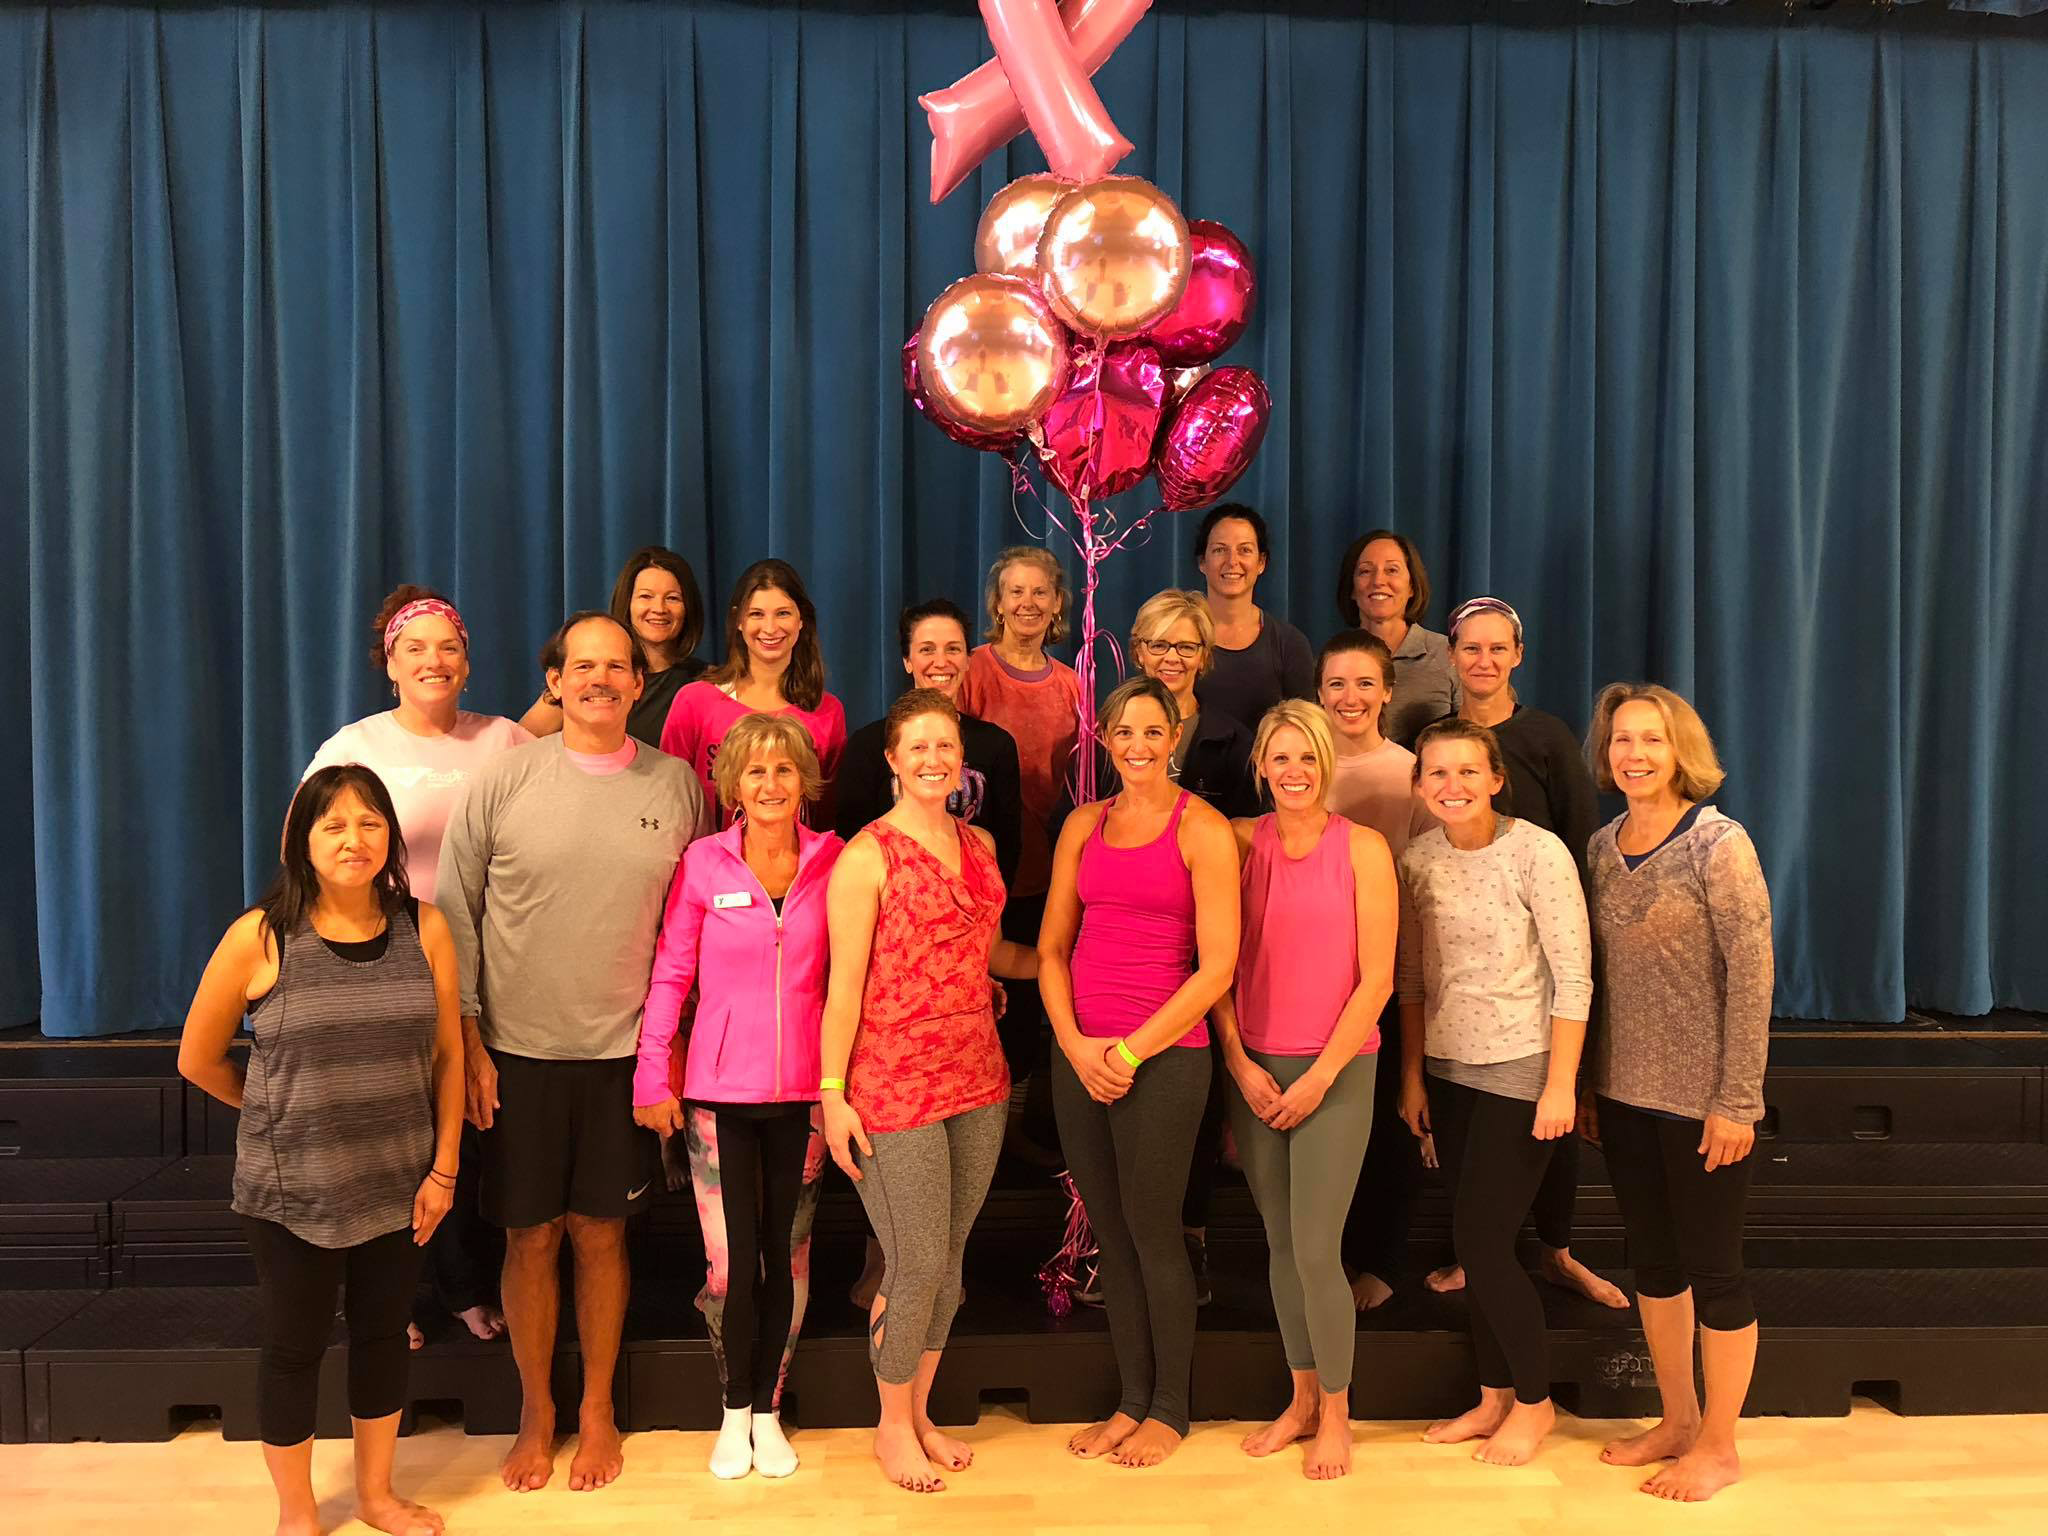 Annual Breast Cancer Yoga Class for Charity-Emilson YMCA (October 2018)